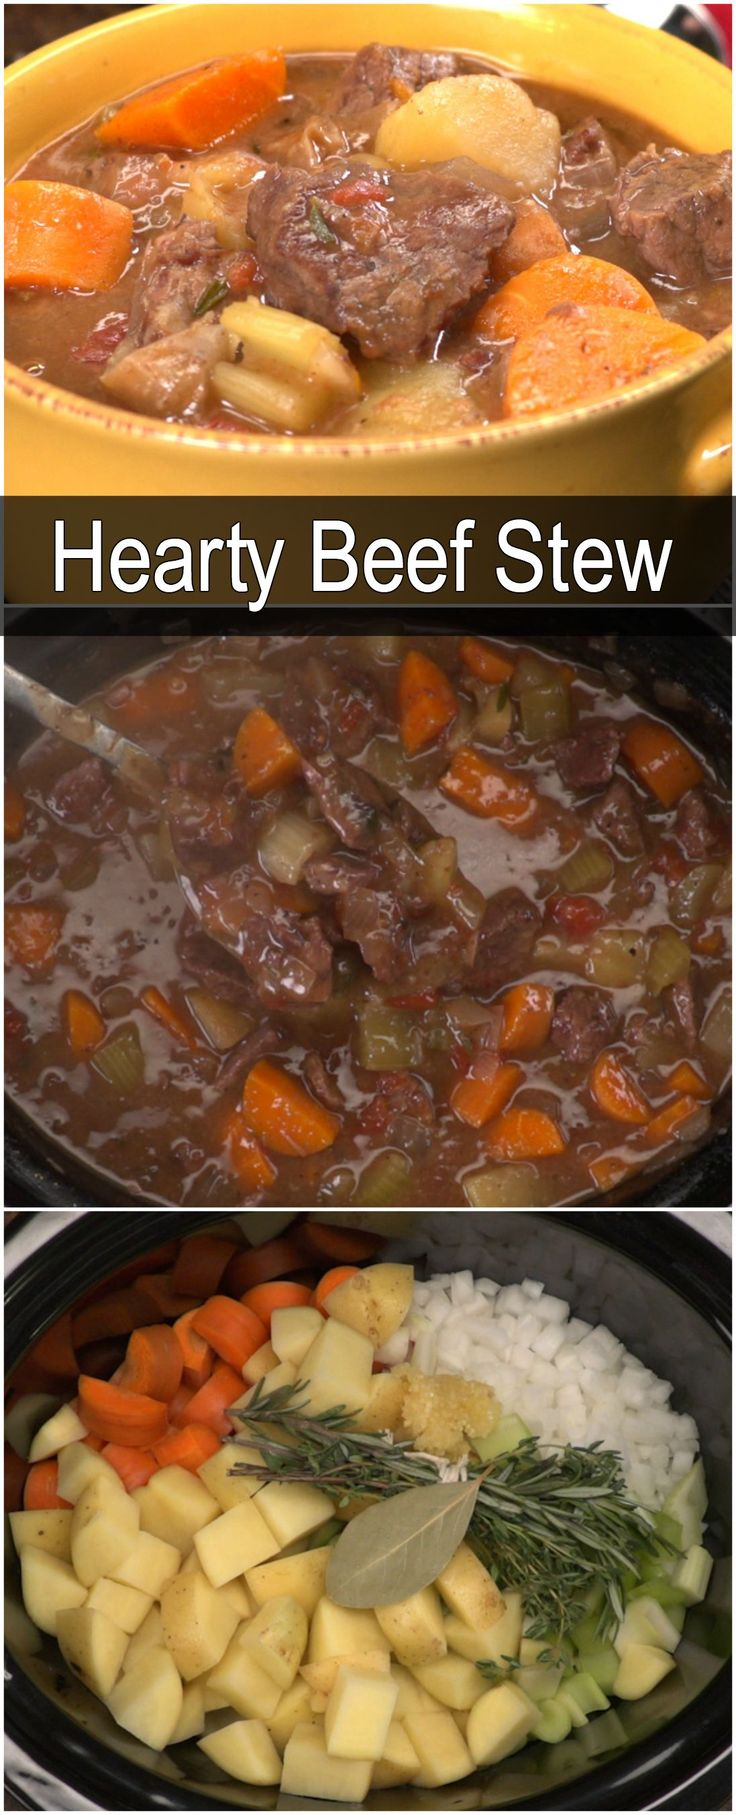 Slow cooker beef stew                                                                                                                                                                                 More